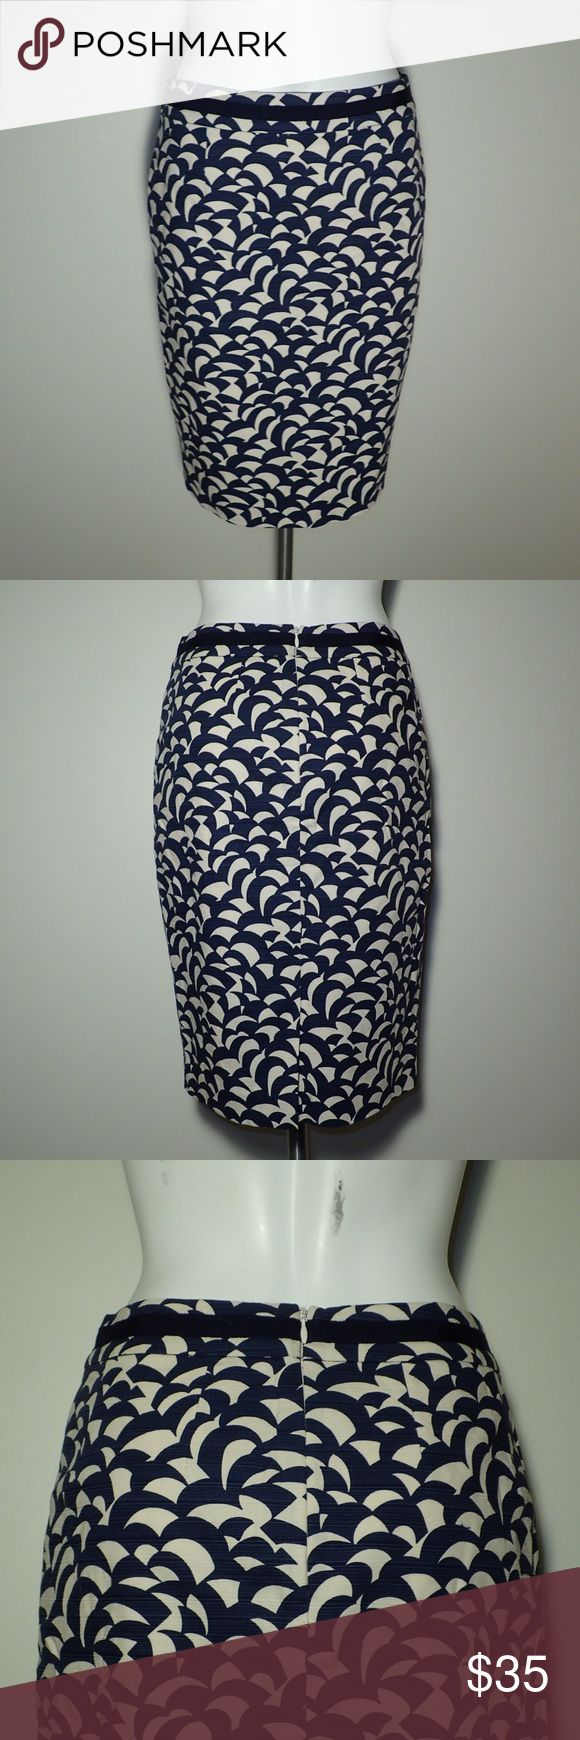 "Boden Pencil Skirt Size US 4P UK 8P Boden woven pencil skirt Size US 4P UK 8P Dark blue / tan geometric print Super nice condition!  1.5"" waistband with ribbon 6"" slit in center back  7"" center back zipper Skirt fabric is 97% cotton and 3% elastane Lining is 96% polyester and 4% elastane Measurements  Waist 28"" Length 22""  Delicate machine wash. Do not tumble dry. Boden Skirts Pencil"